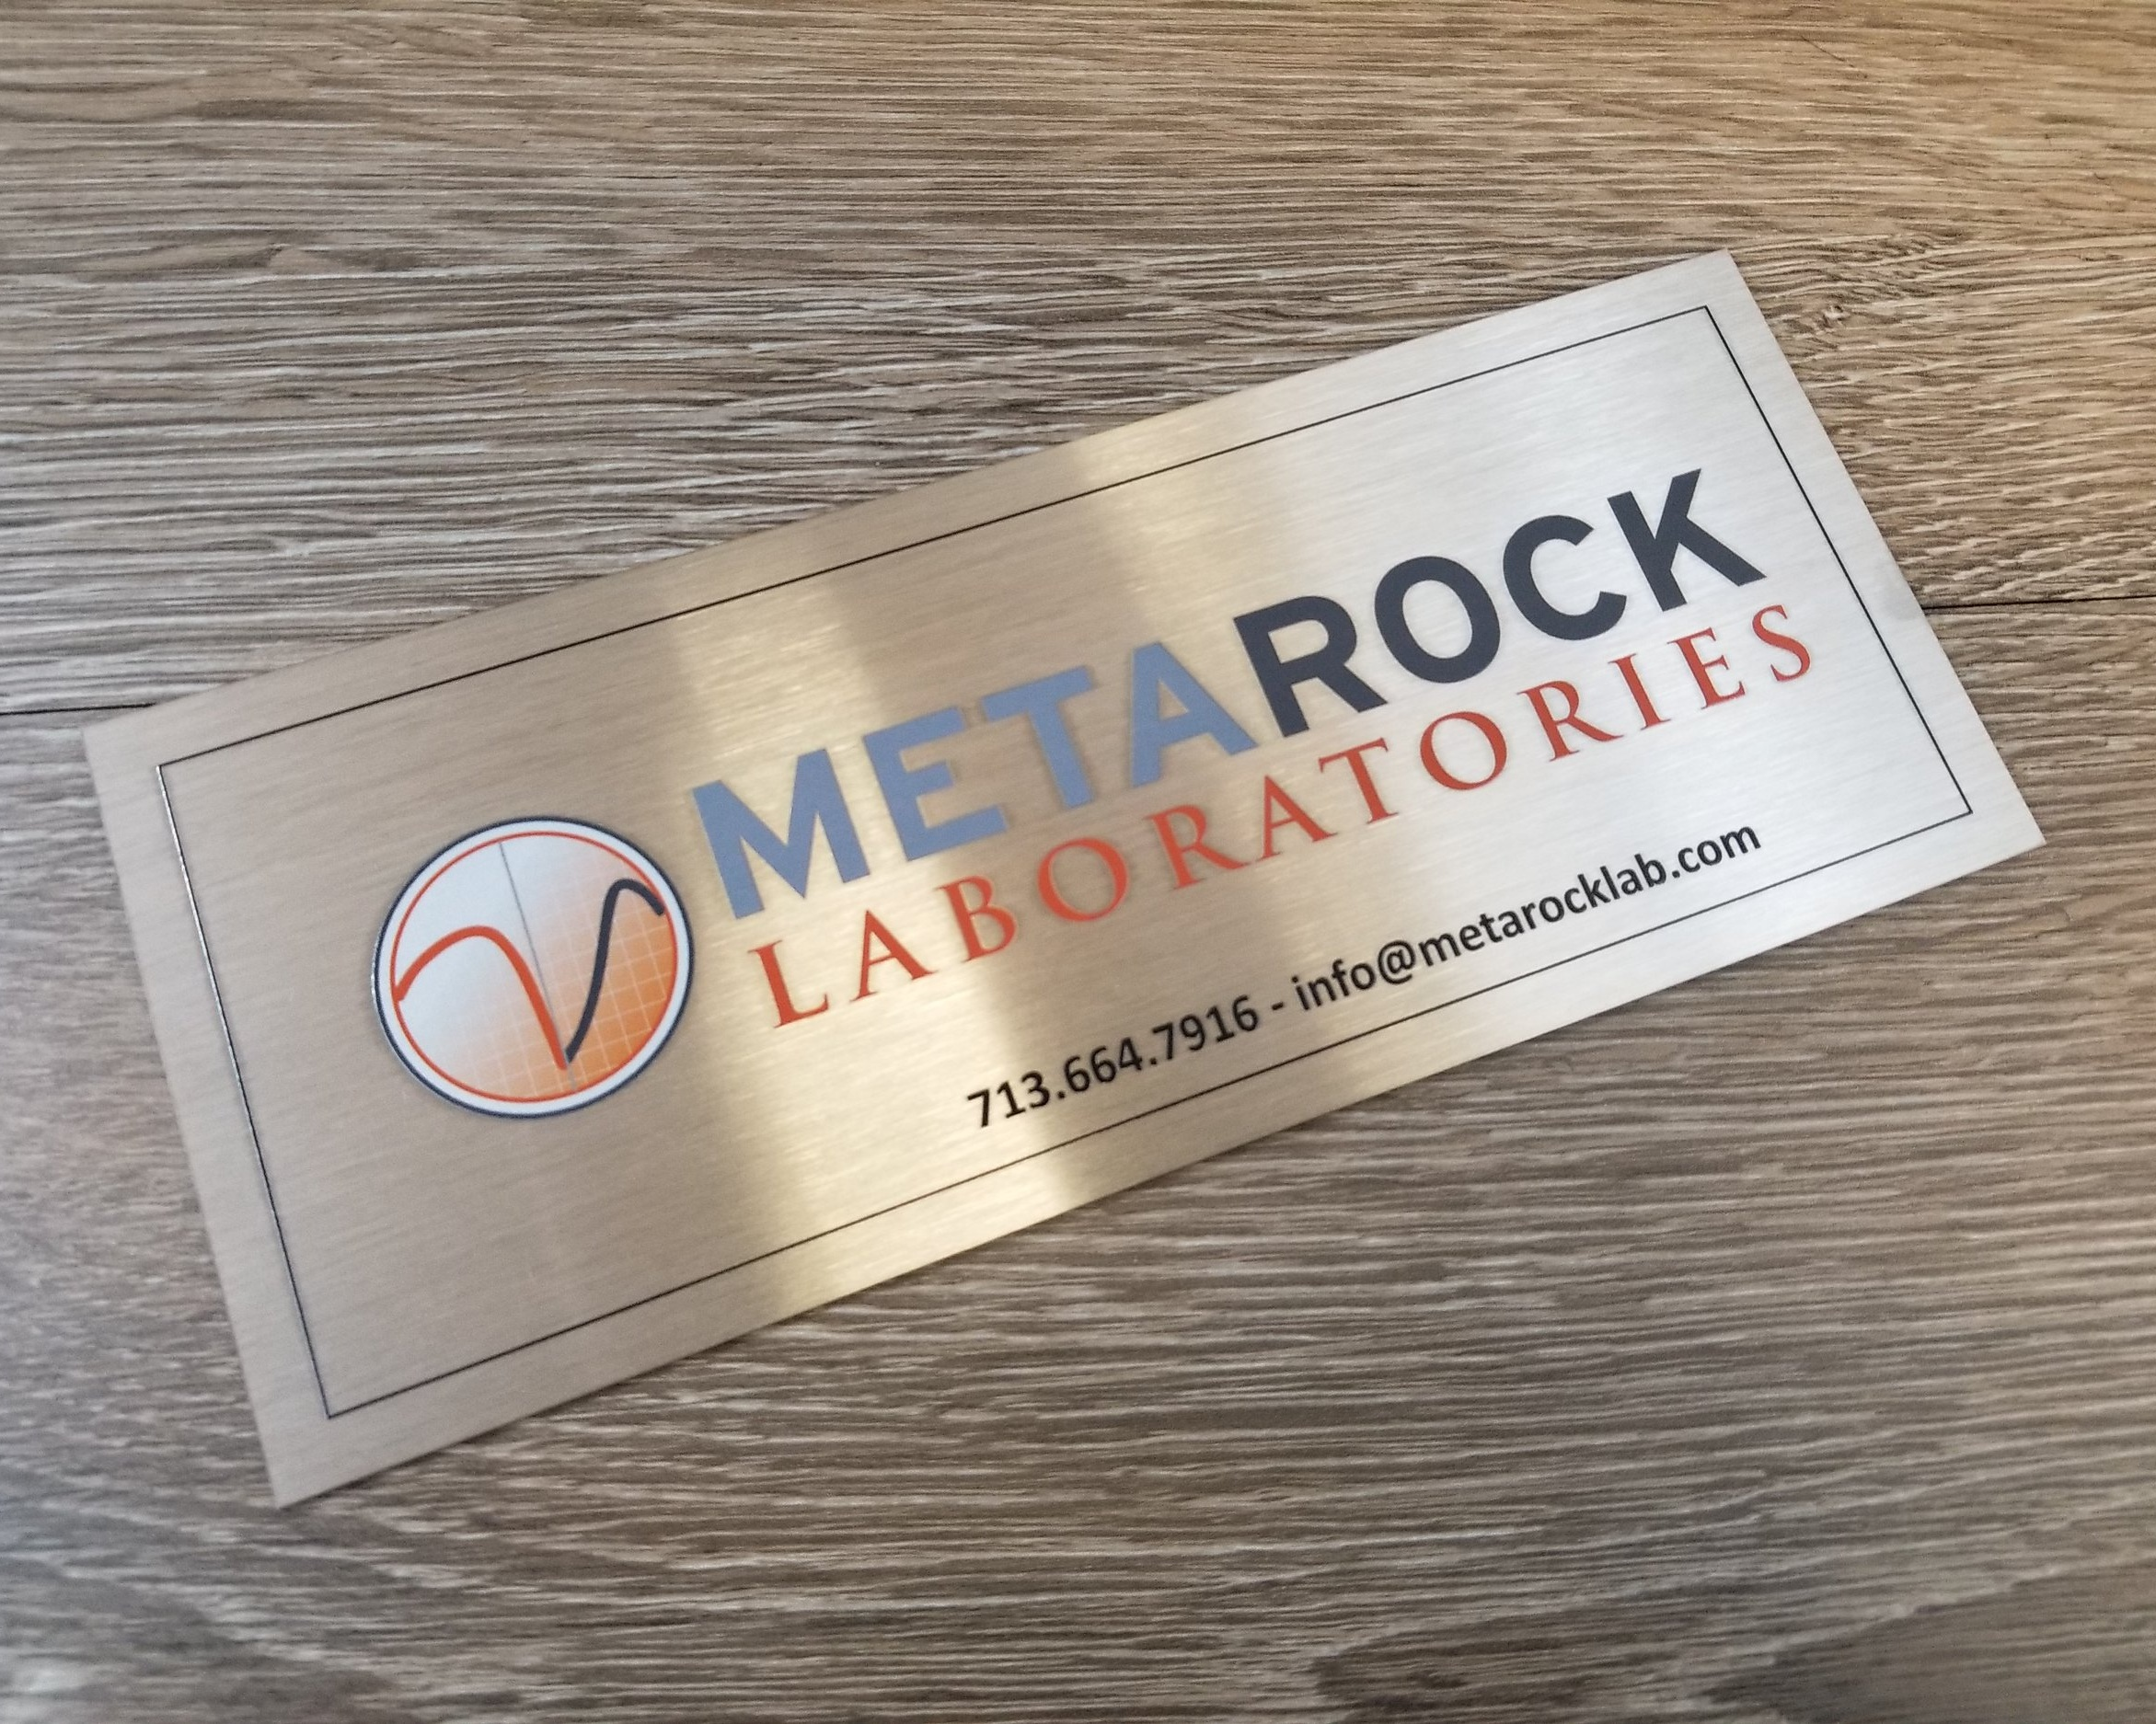 Metal Name Plates - Metal name plates in a variety of substrates including stainless steel and aluminum. Laser etched, engraved, marked, or direct printed according to your specifications.